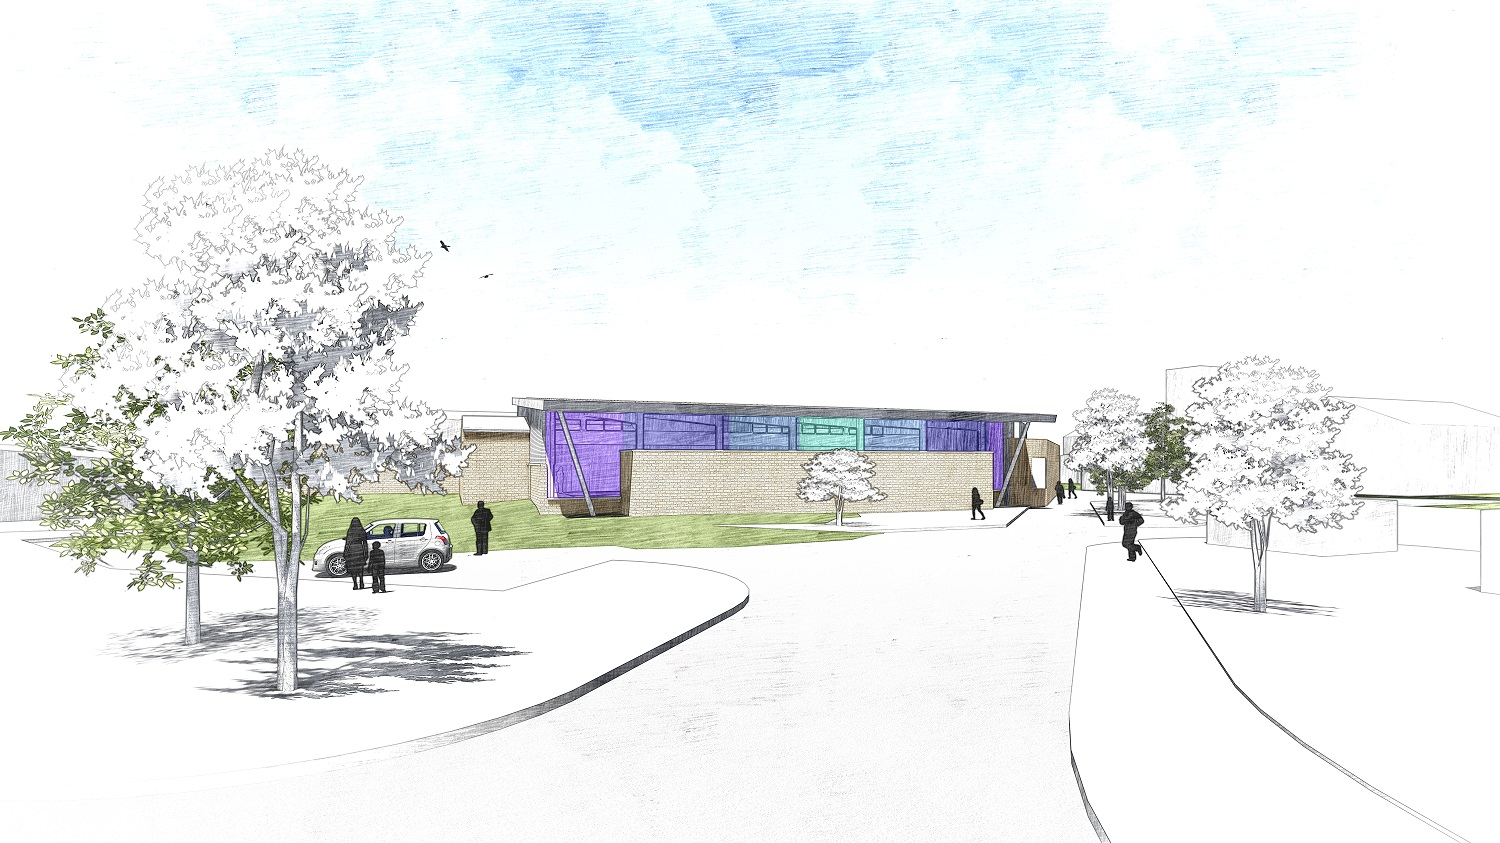 Wildern Leisure Centre proposals get the go-ahead